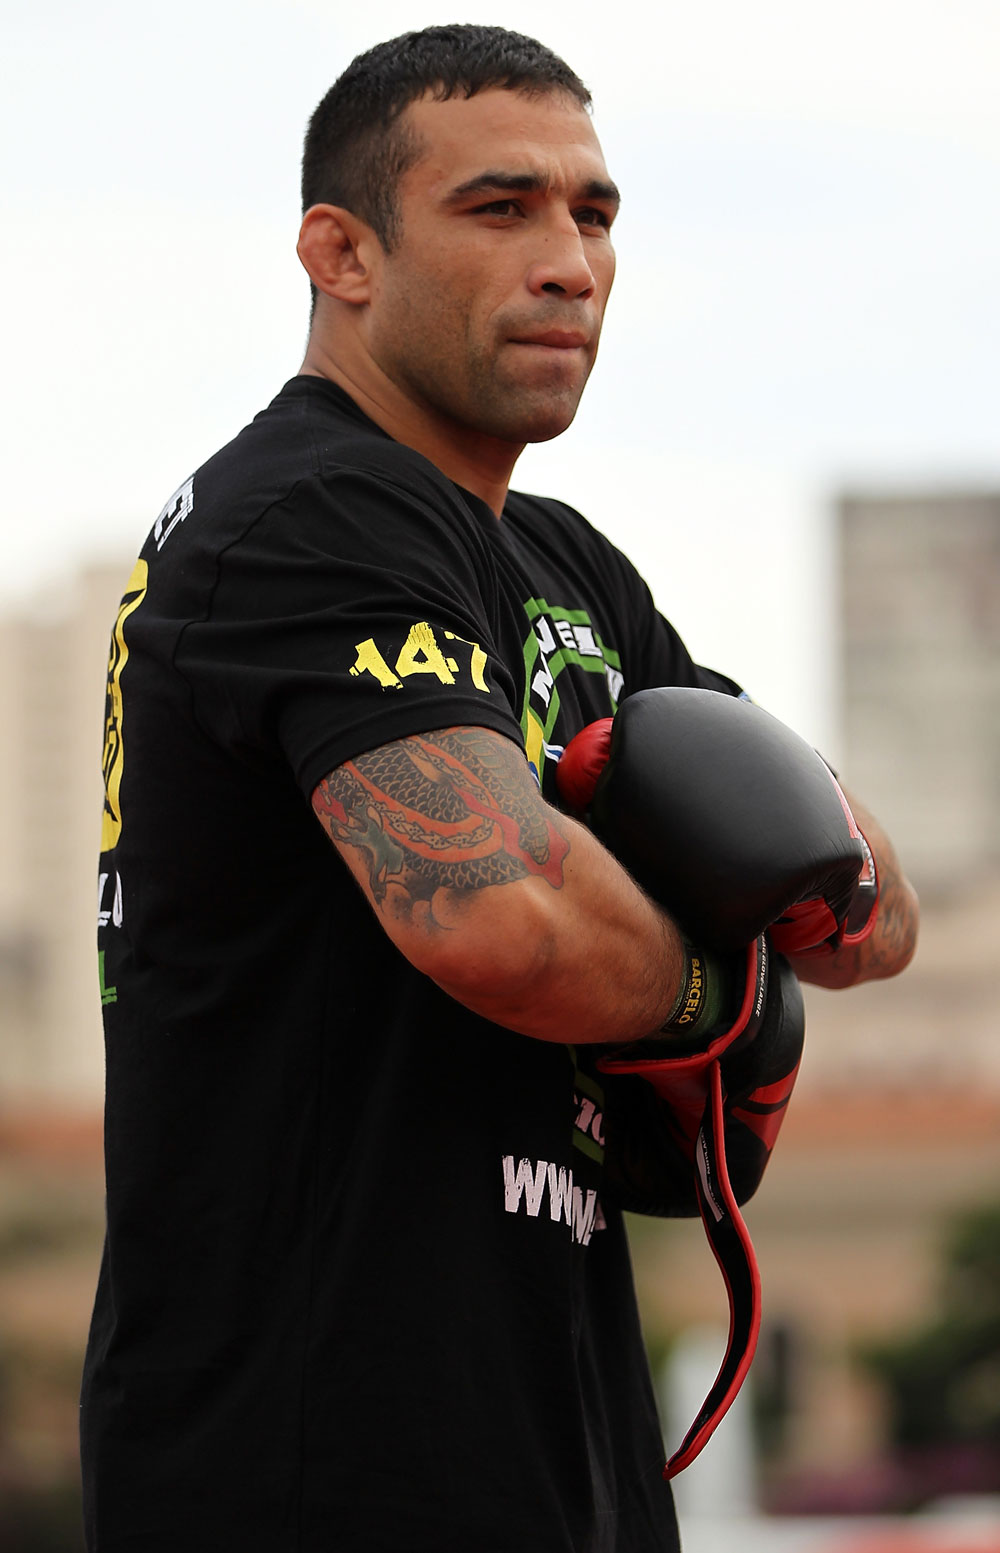 BELO HORIZONTE, BRAZIL - JUNE 20:   Fabricio Werdum works out for the fans and media during the UFC 147 open workouts at Praca da Estacao on June 20, 2012 in Belo Horizonte, Brazil.  (Photo by Josh Hedges/Zuffa LLC/Zuffa LLC via Getty Images)